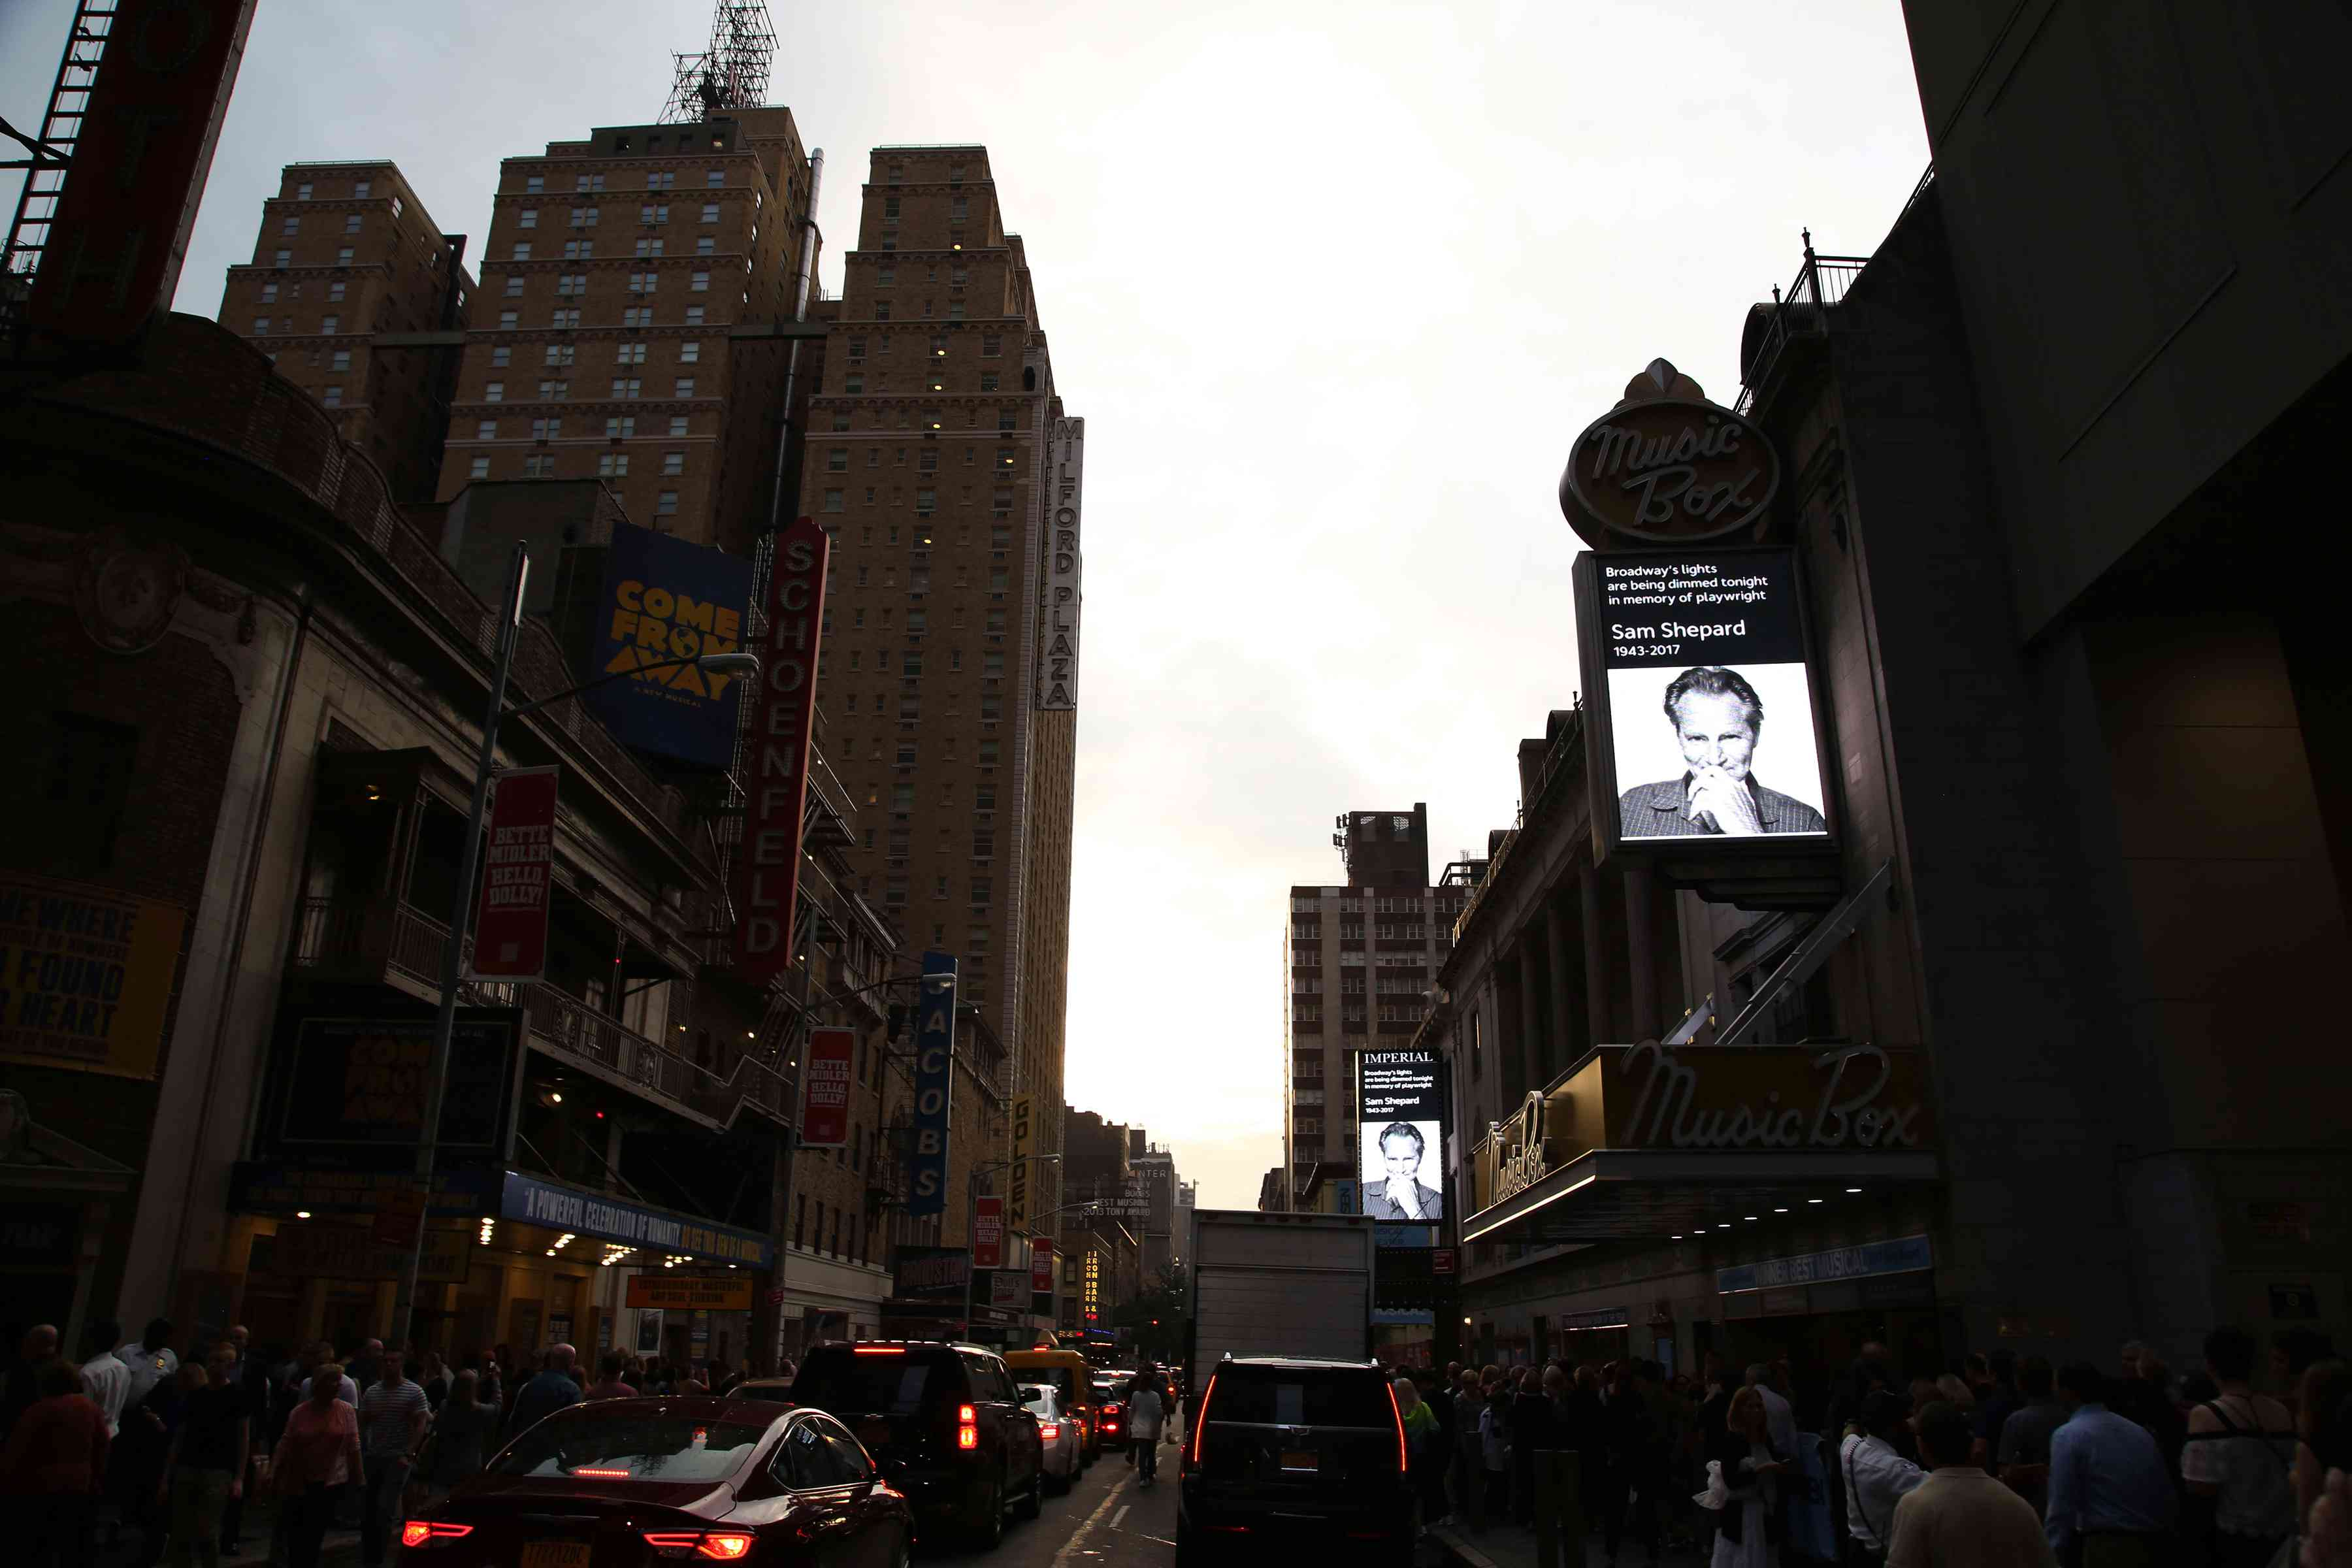 The marquees on Broadway dimmed at sunset with an image of Shepard on all the signs